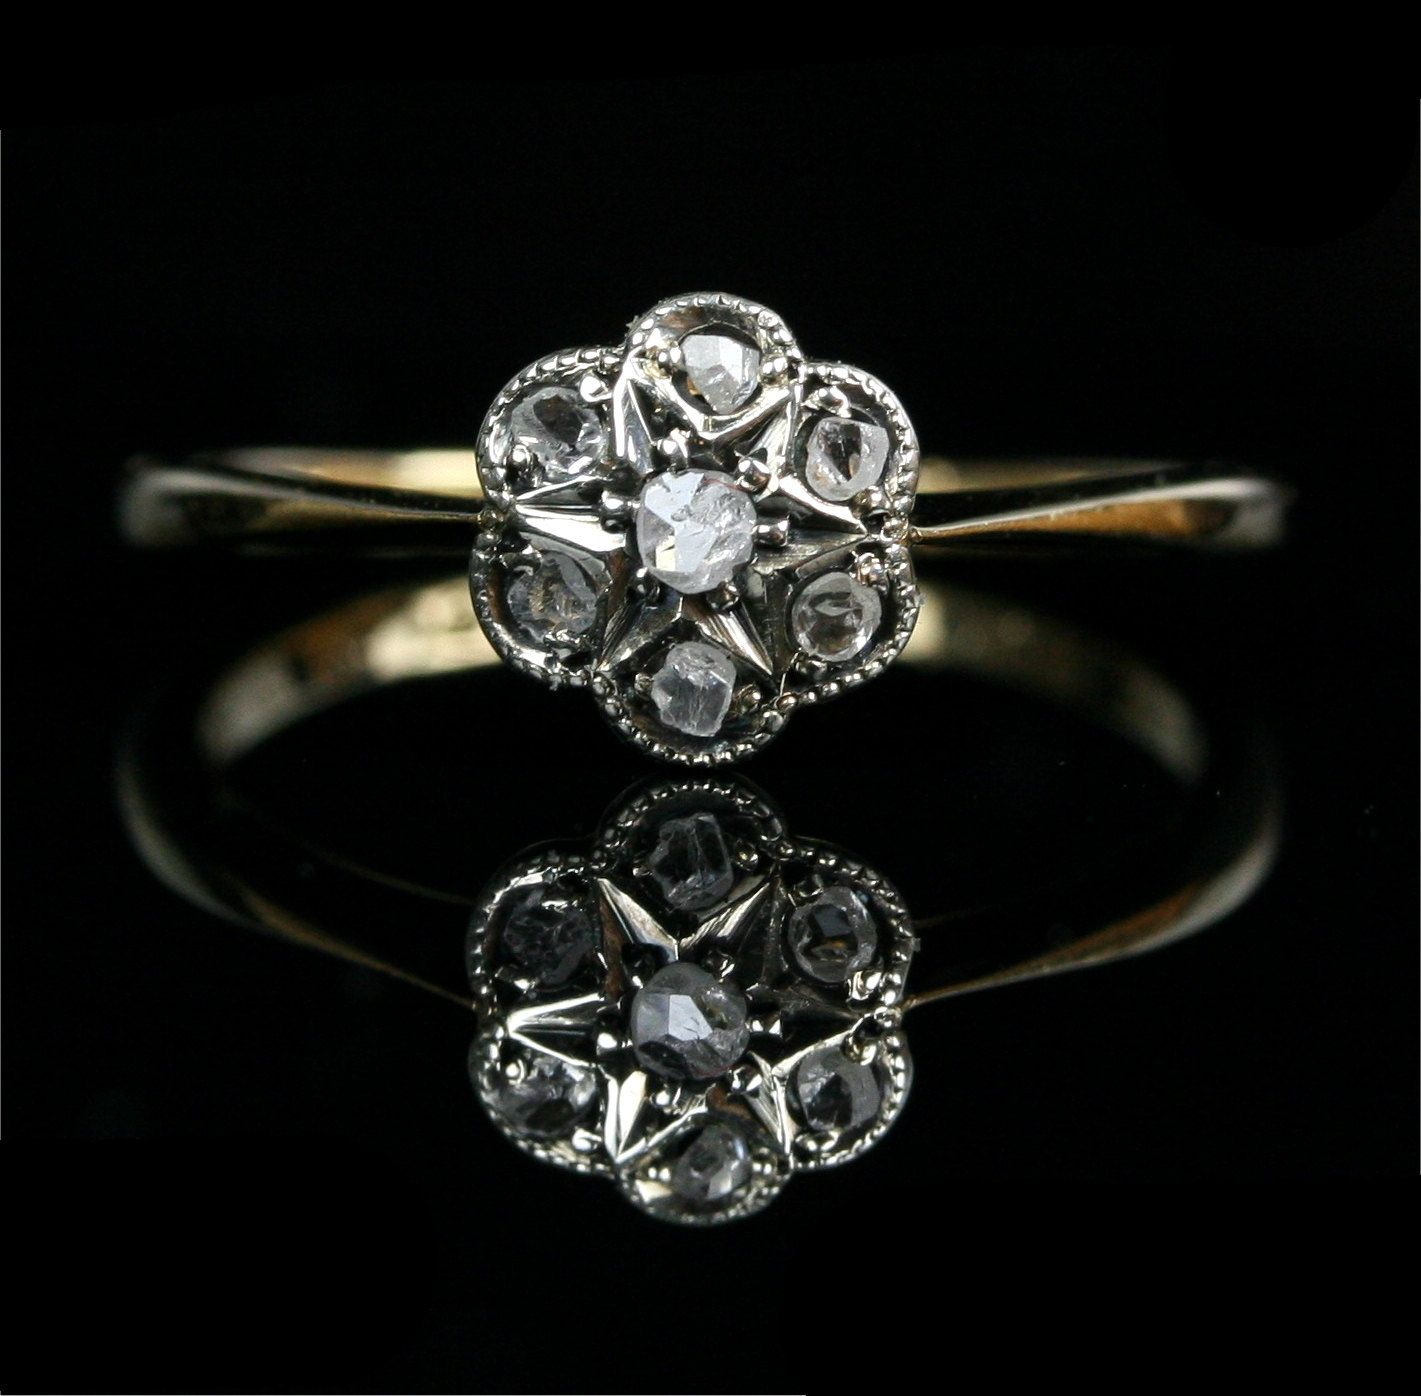 rose wedding ring Early Victorian 18k Gold Rose Cut Diamond Flower Cluster Engagement Ring